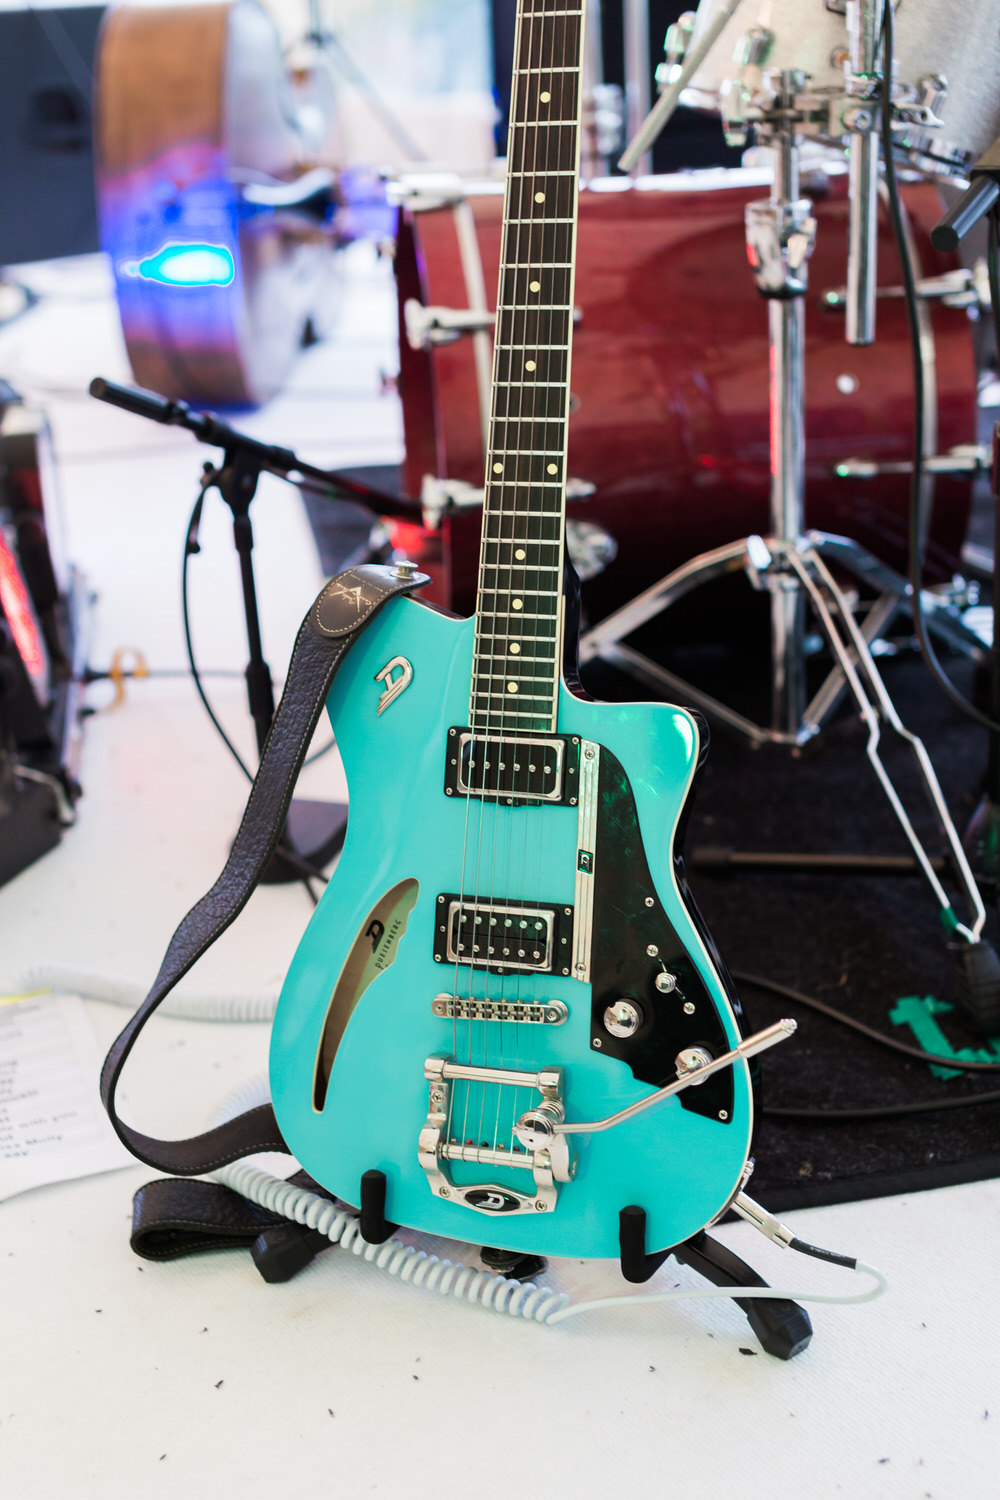 Special-Day-Photography-The-Bringewood-Ludlow-The-Bringewood-Hillside-Wedding-a-retro-guitar-for-the-first-dance.jpg